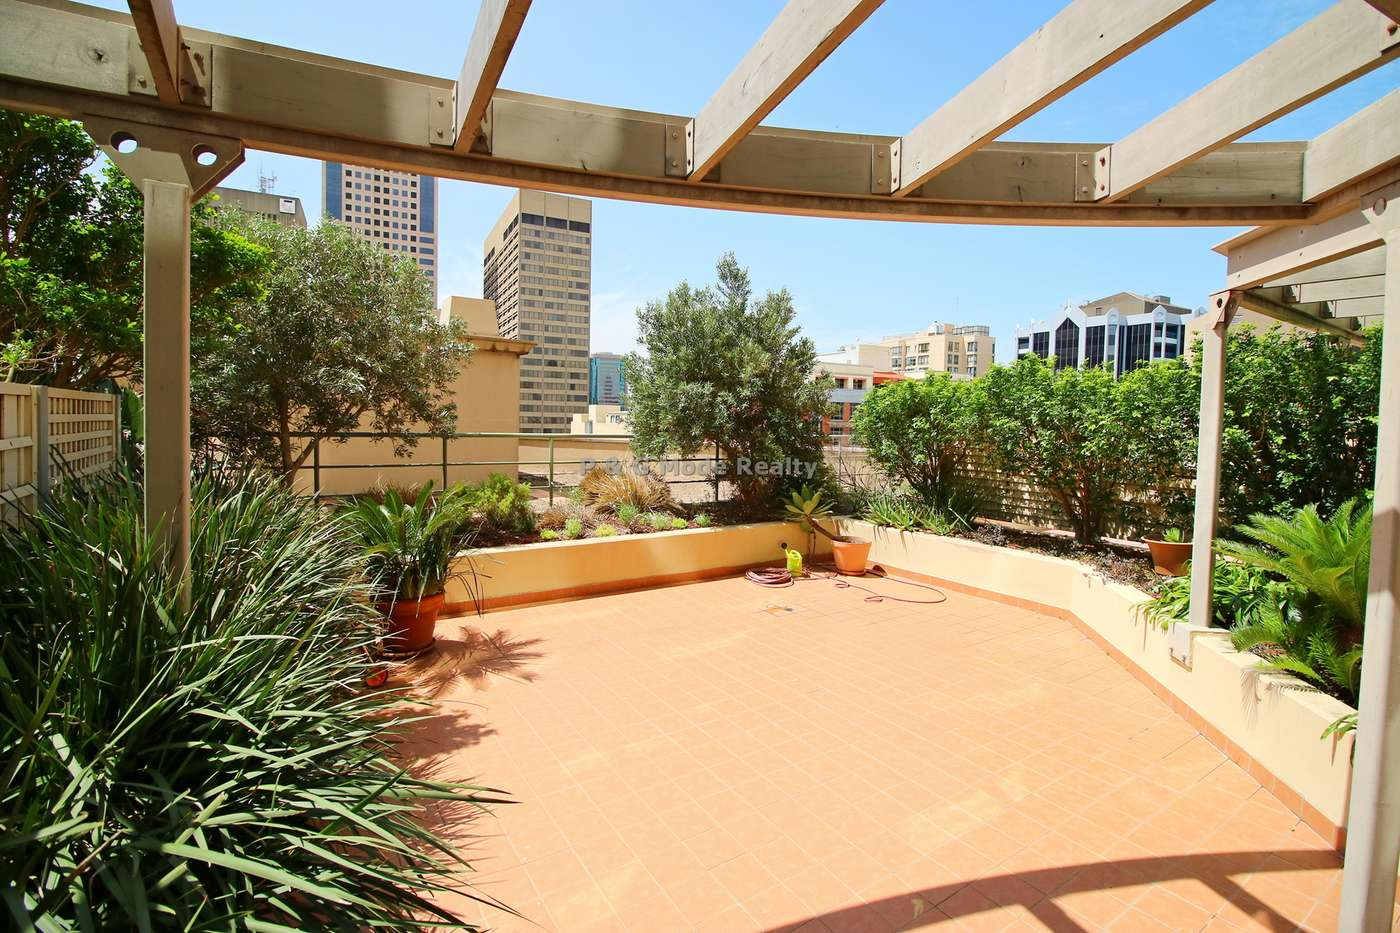 Main view of Homely apartment listing, 2 Quay Street, Sydney, NSW 2000